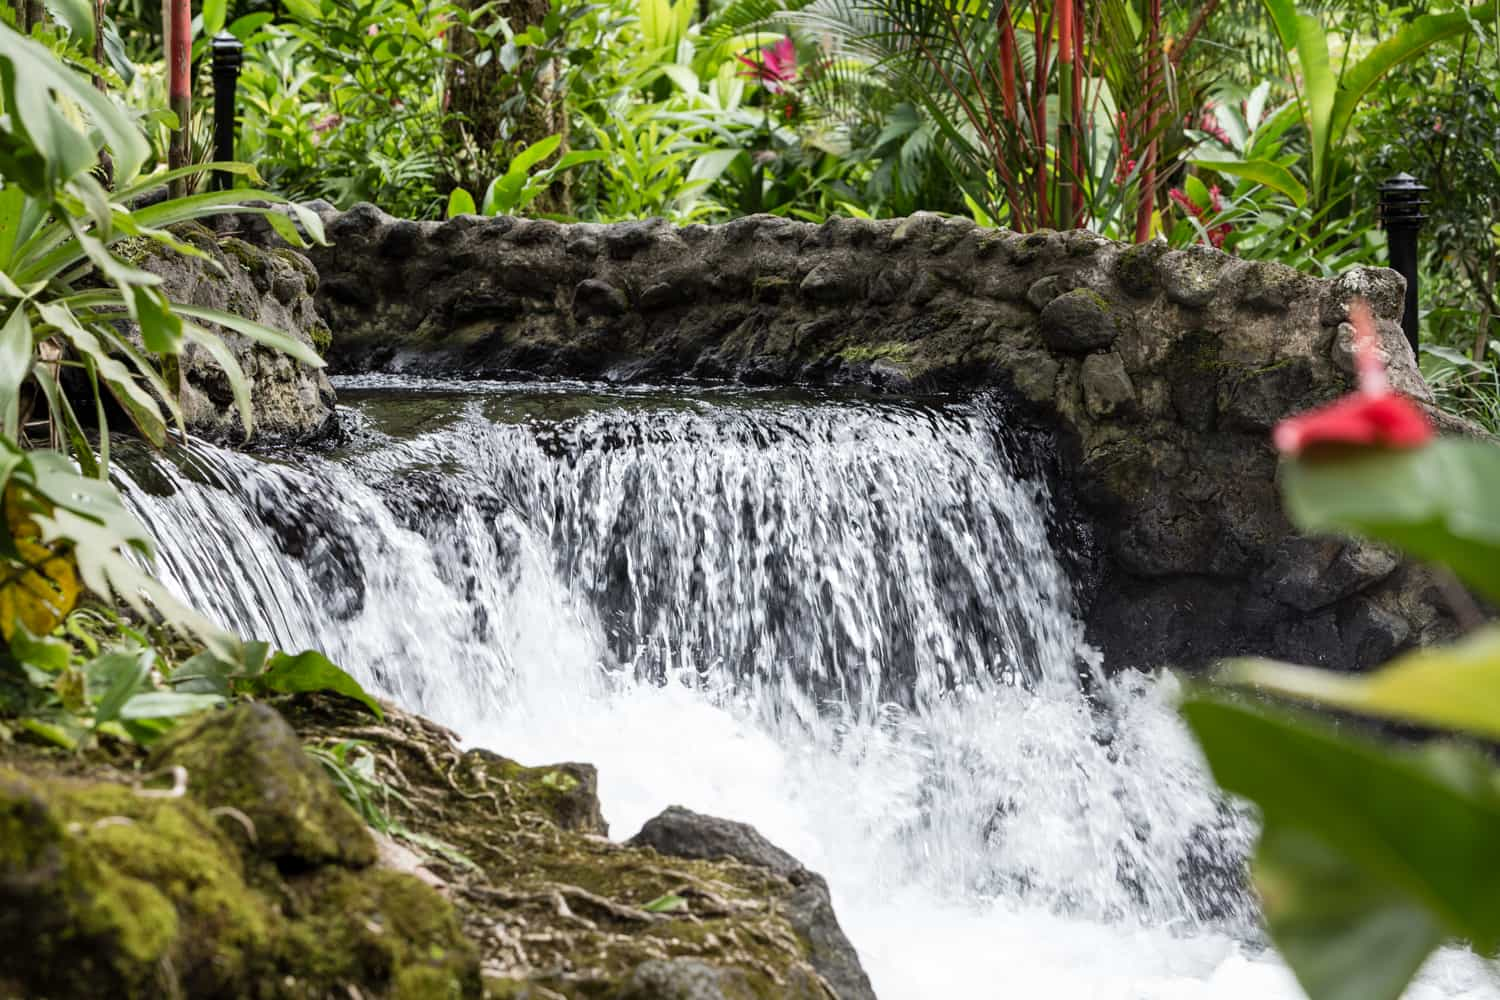 Water from Tabacon thermal spring pours down waterfall.